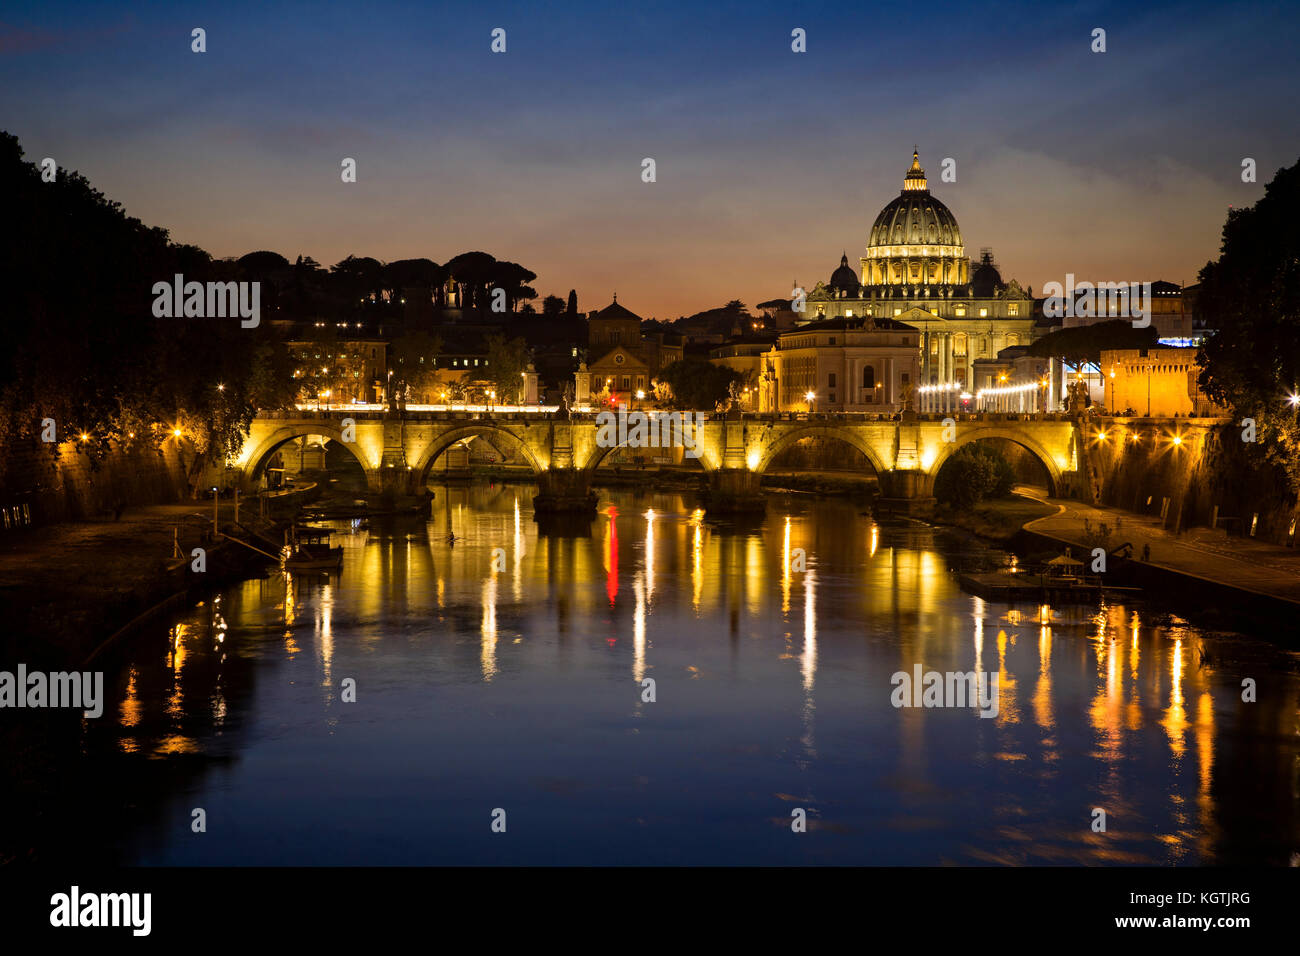 St. Peters Basilica, Ponte Vittorio Emanuele II, and the Tiber River in Rome, Italy. - Stock Image